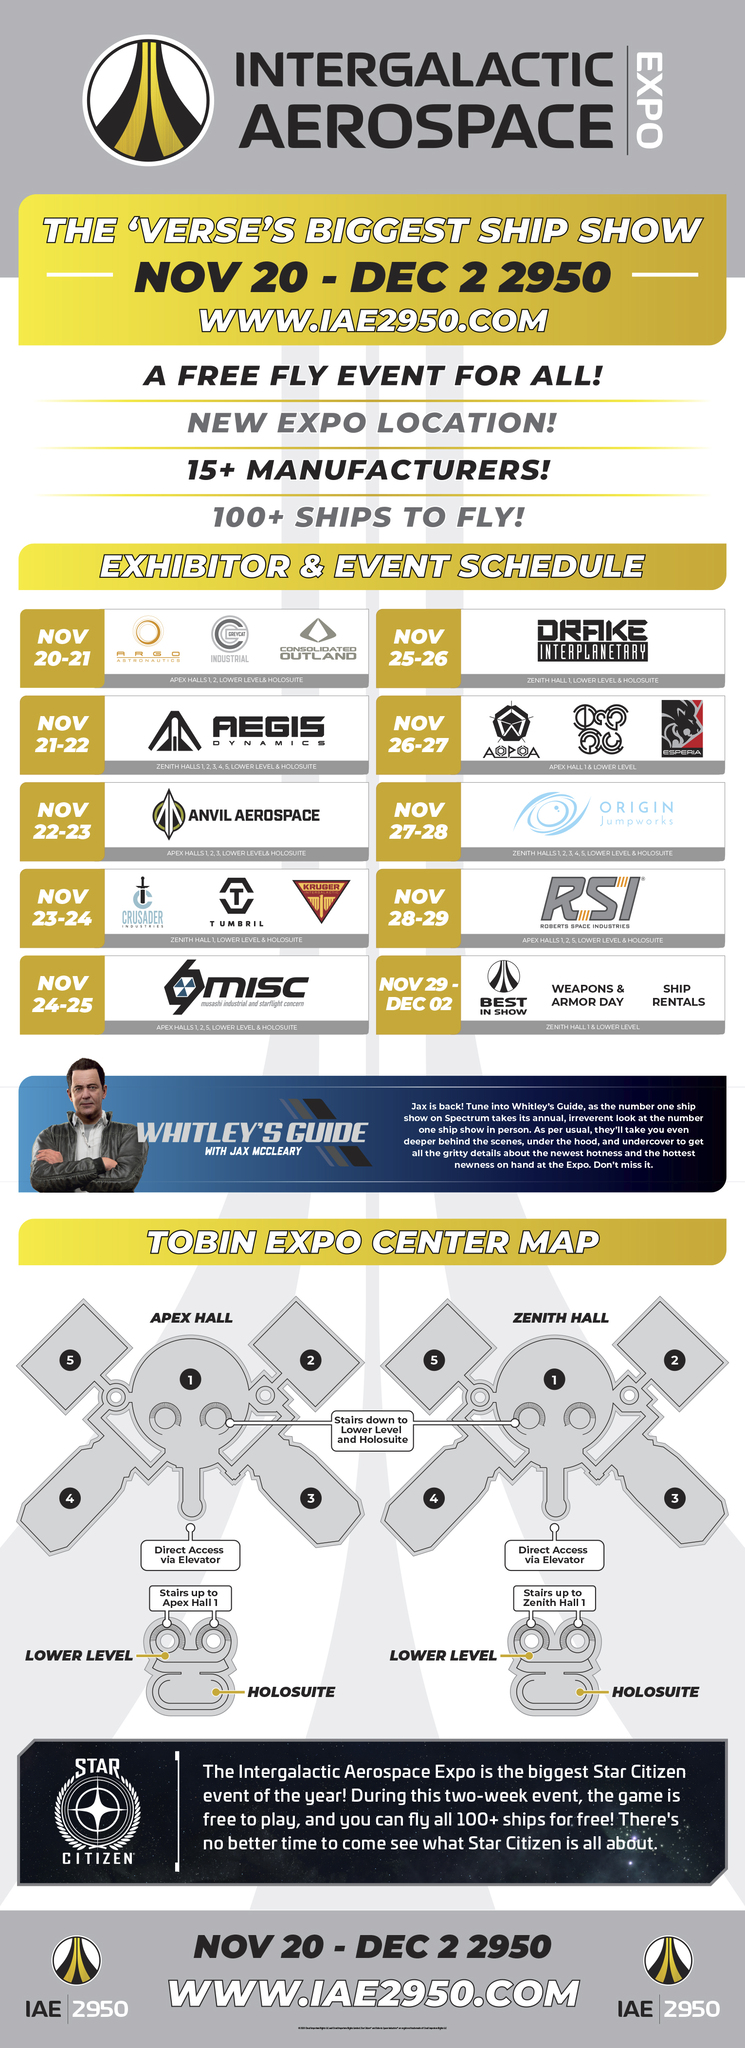 Star Citizen | IAE 2950 Event Infographic